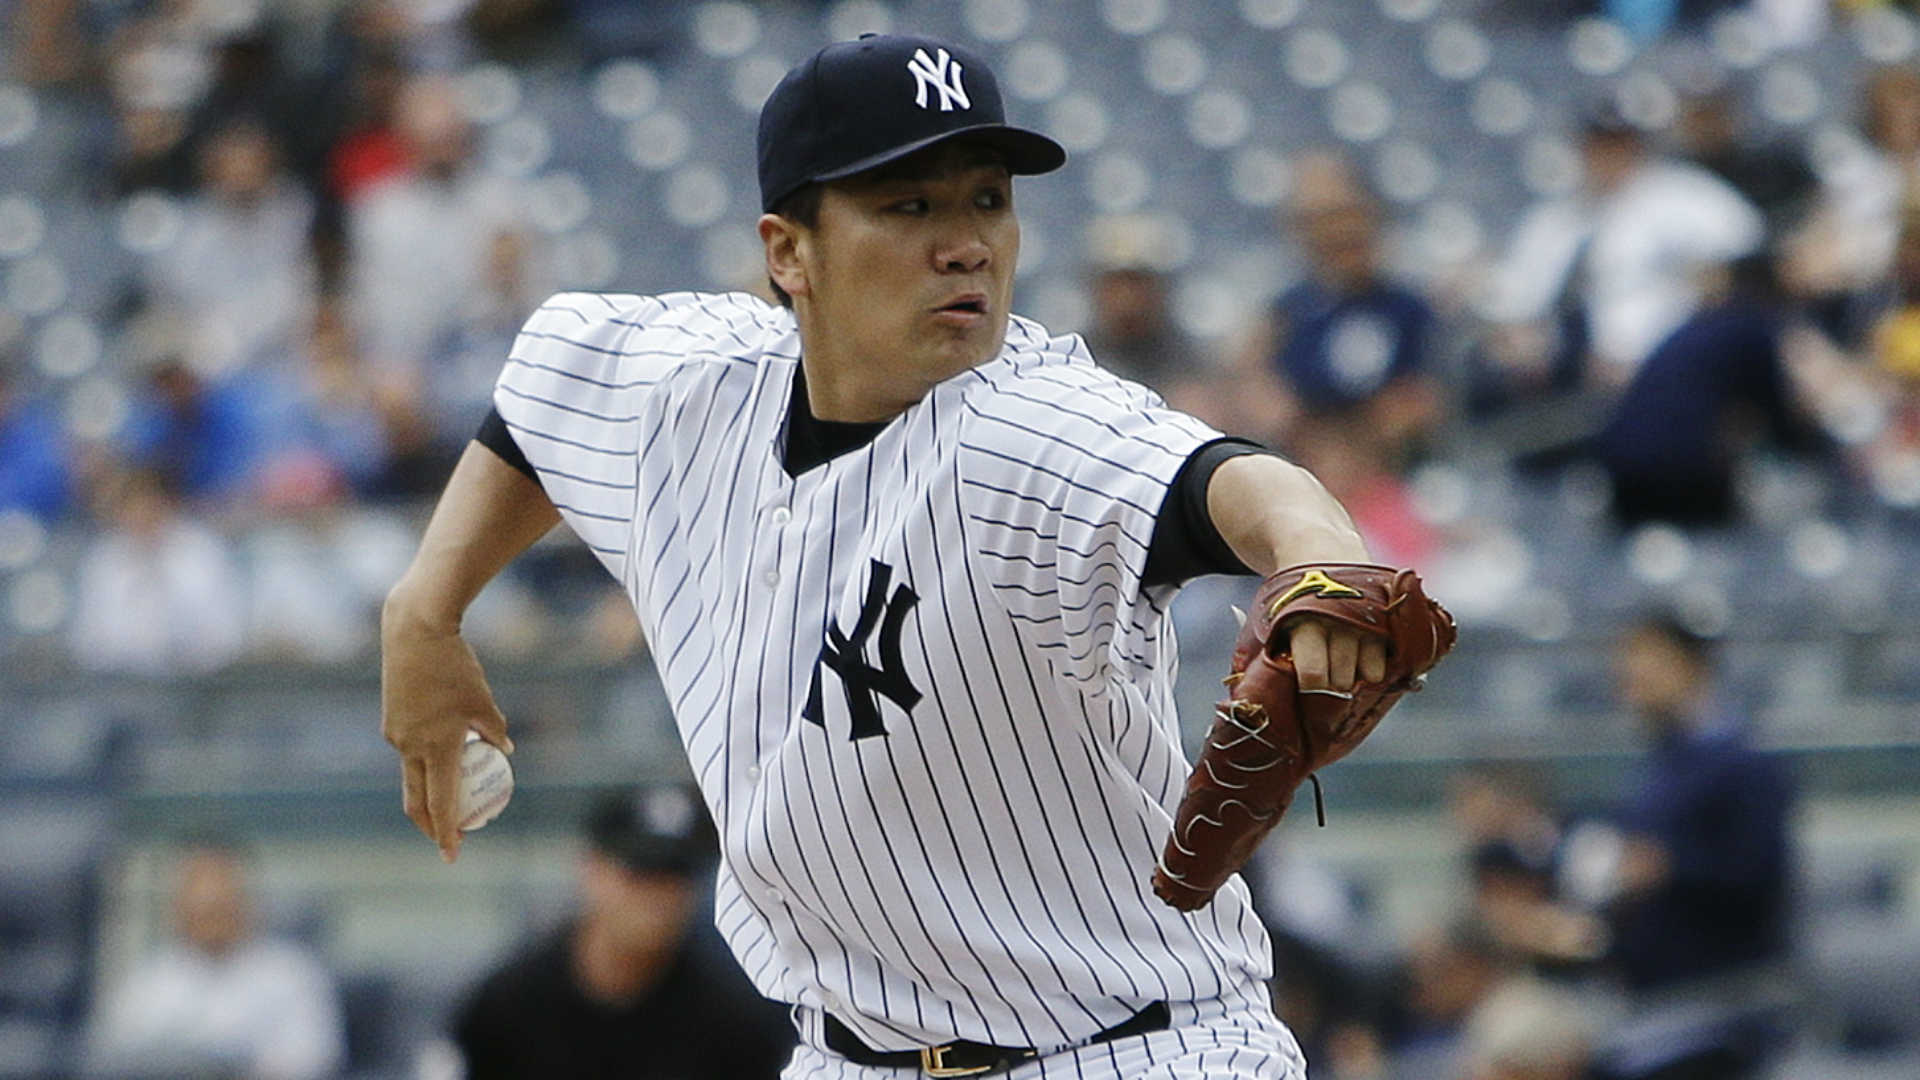 Yankees' Masahiro Tanaka has partially torn UCL